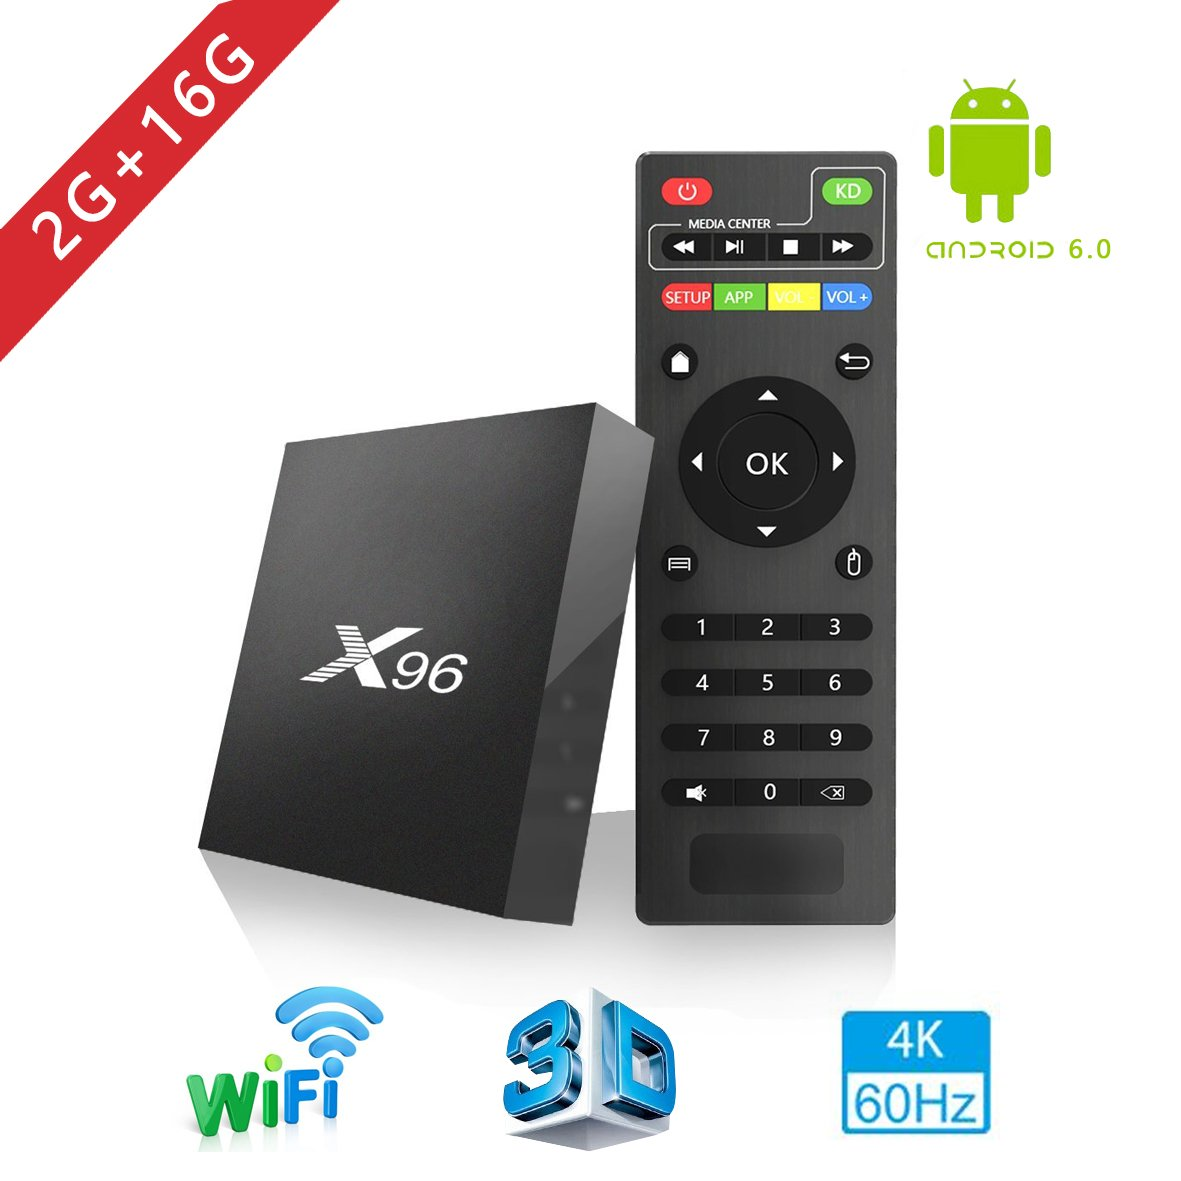 Android 7.1 Smart TV Box - Aoxun X96 2018 New Generation Android TV Box with Amlogic S905X 64Bits Quad-Core, 2GB+16GB, Built-in Wi-Fi, HDMI Output, USB*2, 4K UHD Web TV Box